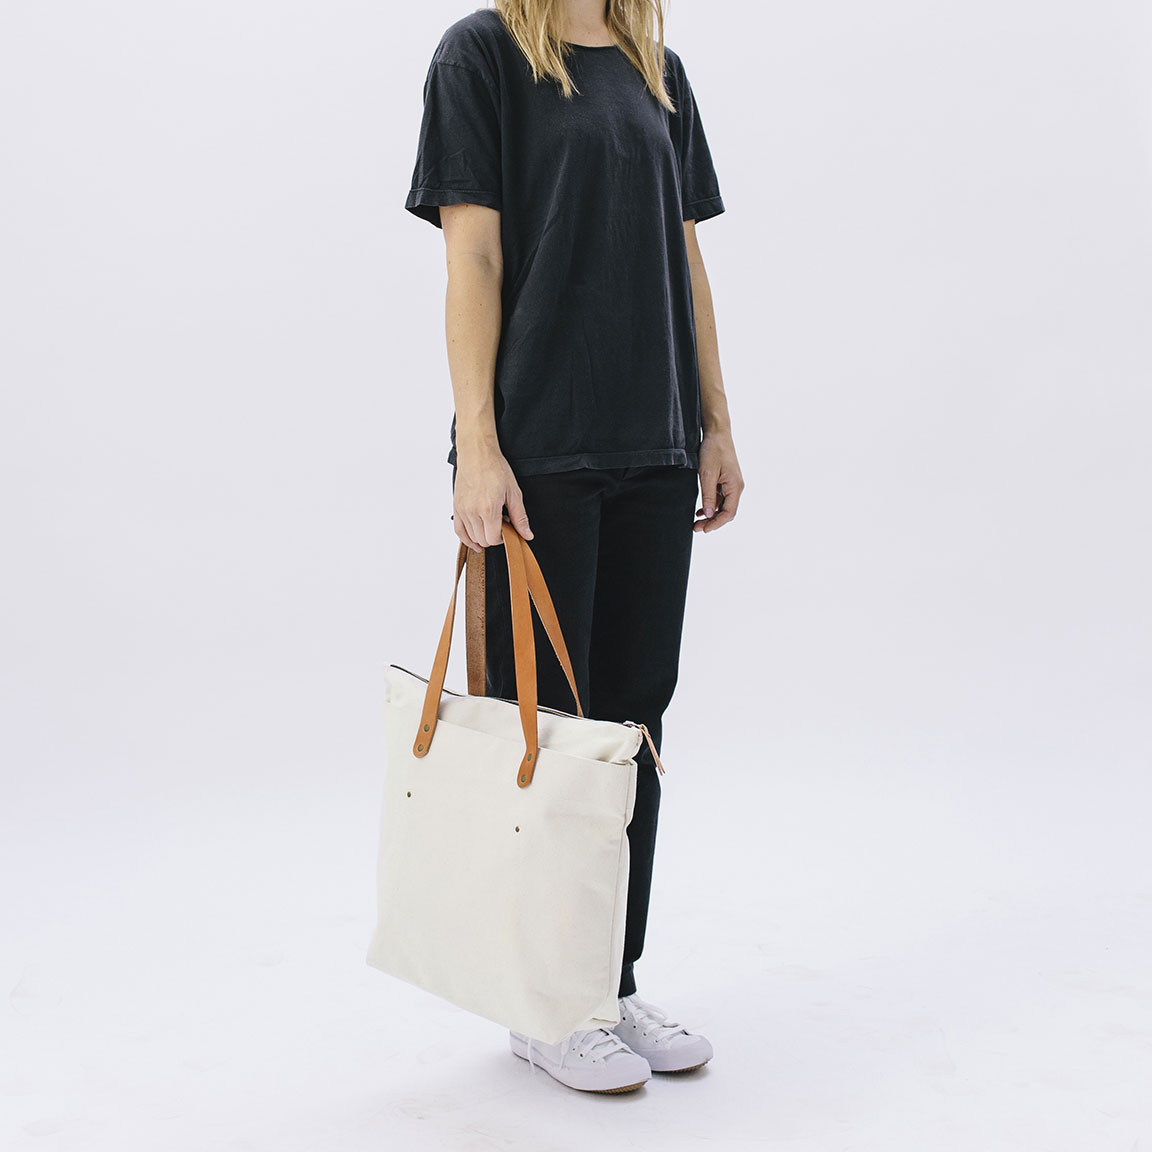 Winter Session ジップトートバック (ZIP-TOP TOTE)_d0334060_13575341.jpg